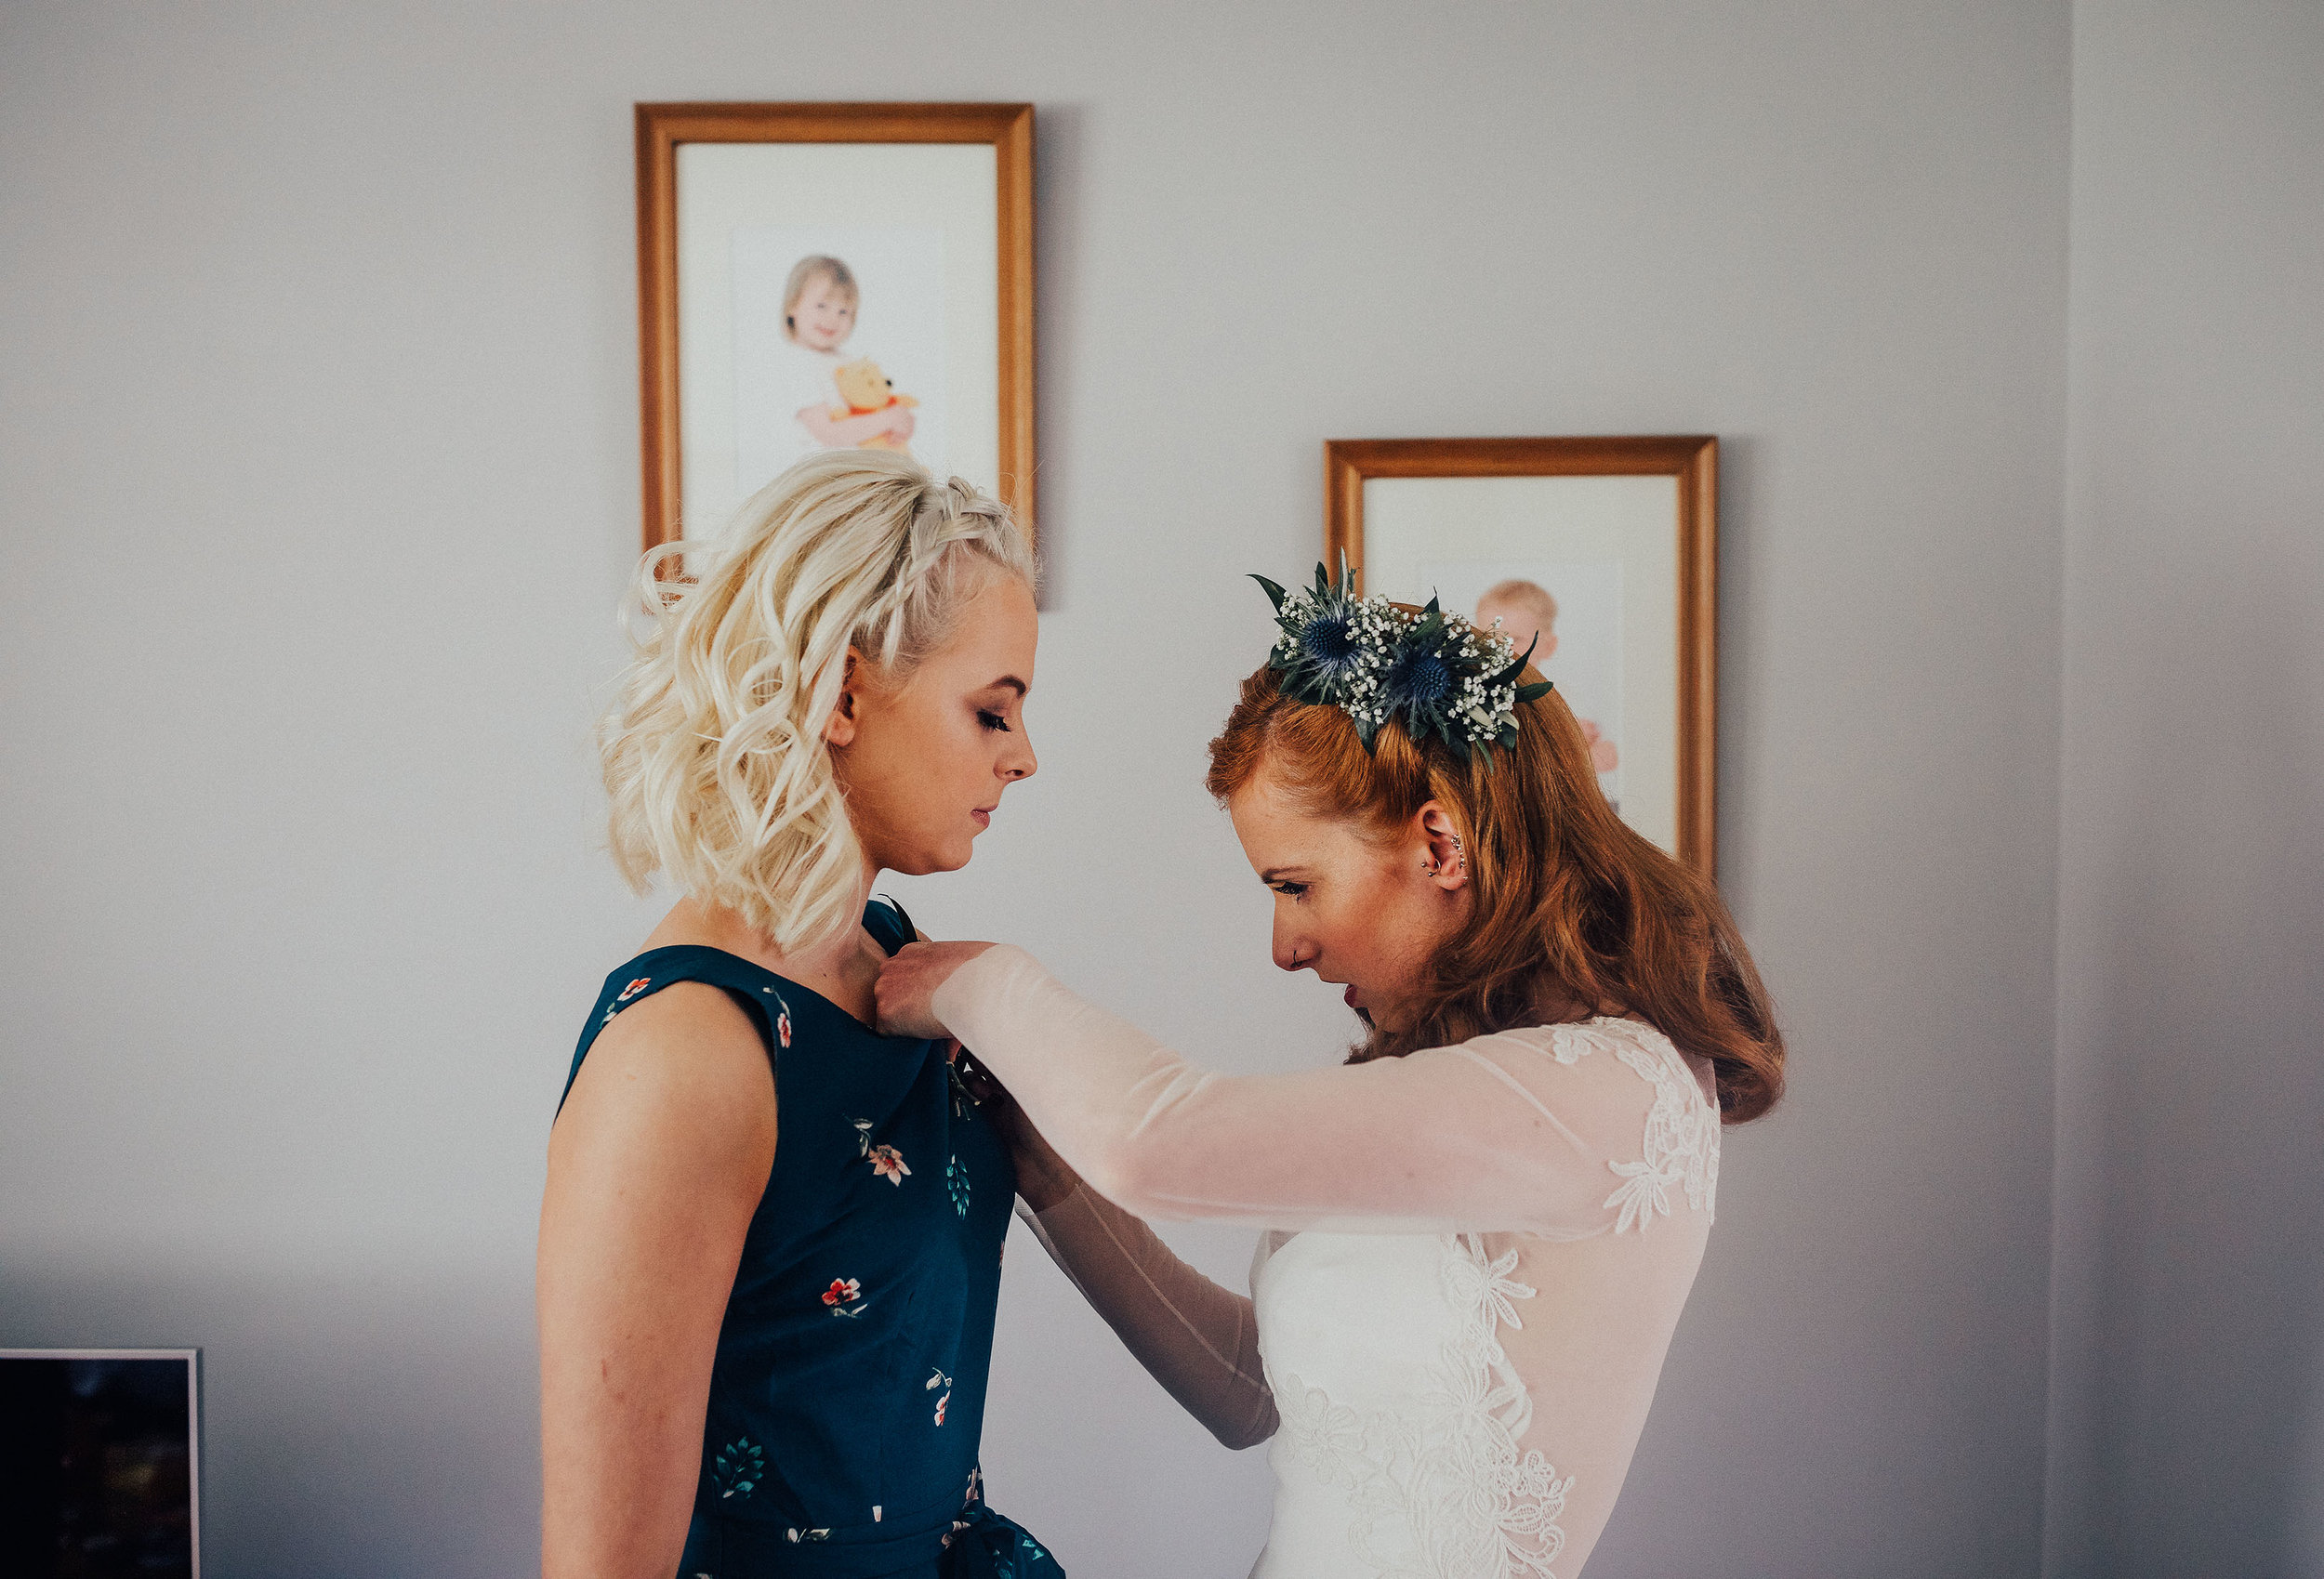 SAME_SEX_WEDDING_PHOTOGRAPHER_SLOANS_GLASGOW_PJ_PHILLIPS_PHOTOGRAPHY_19.jpg